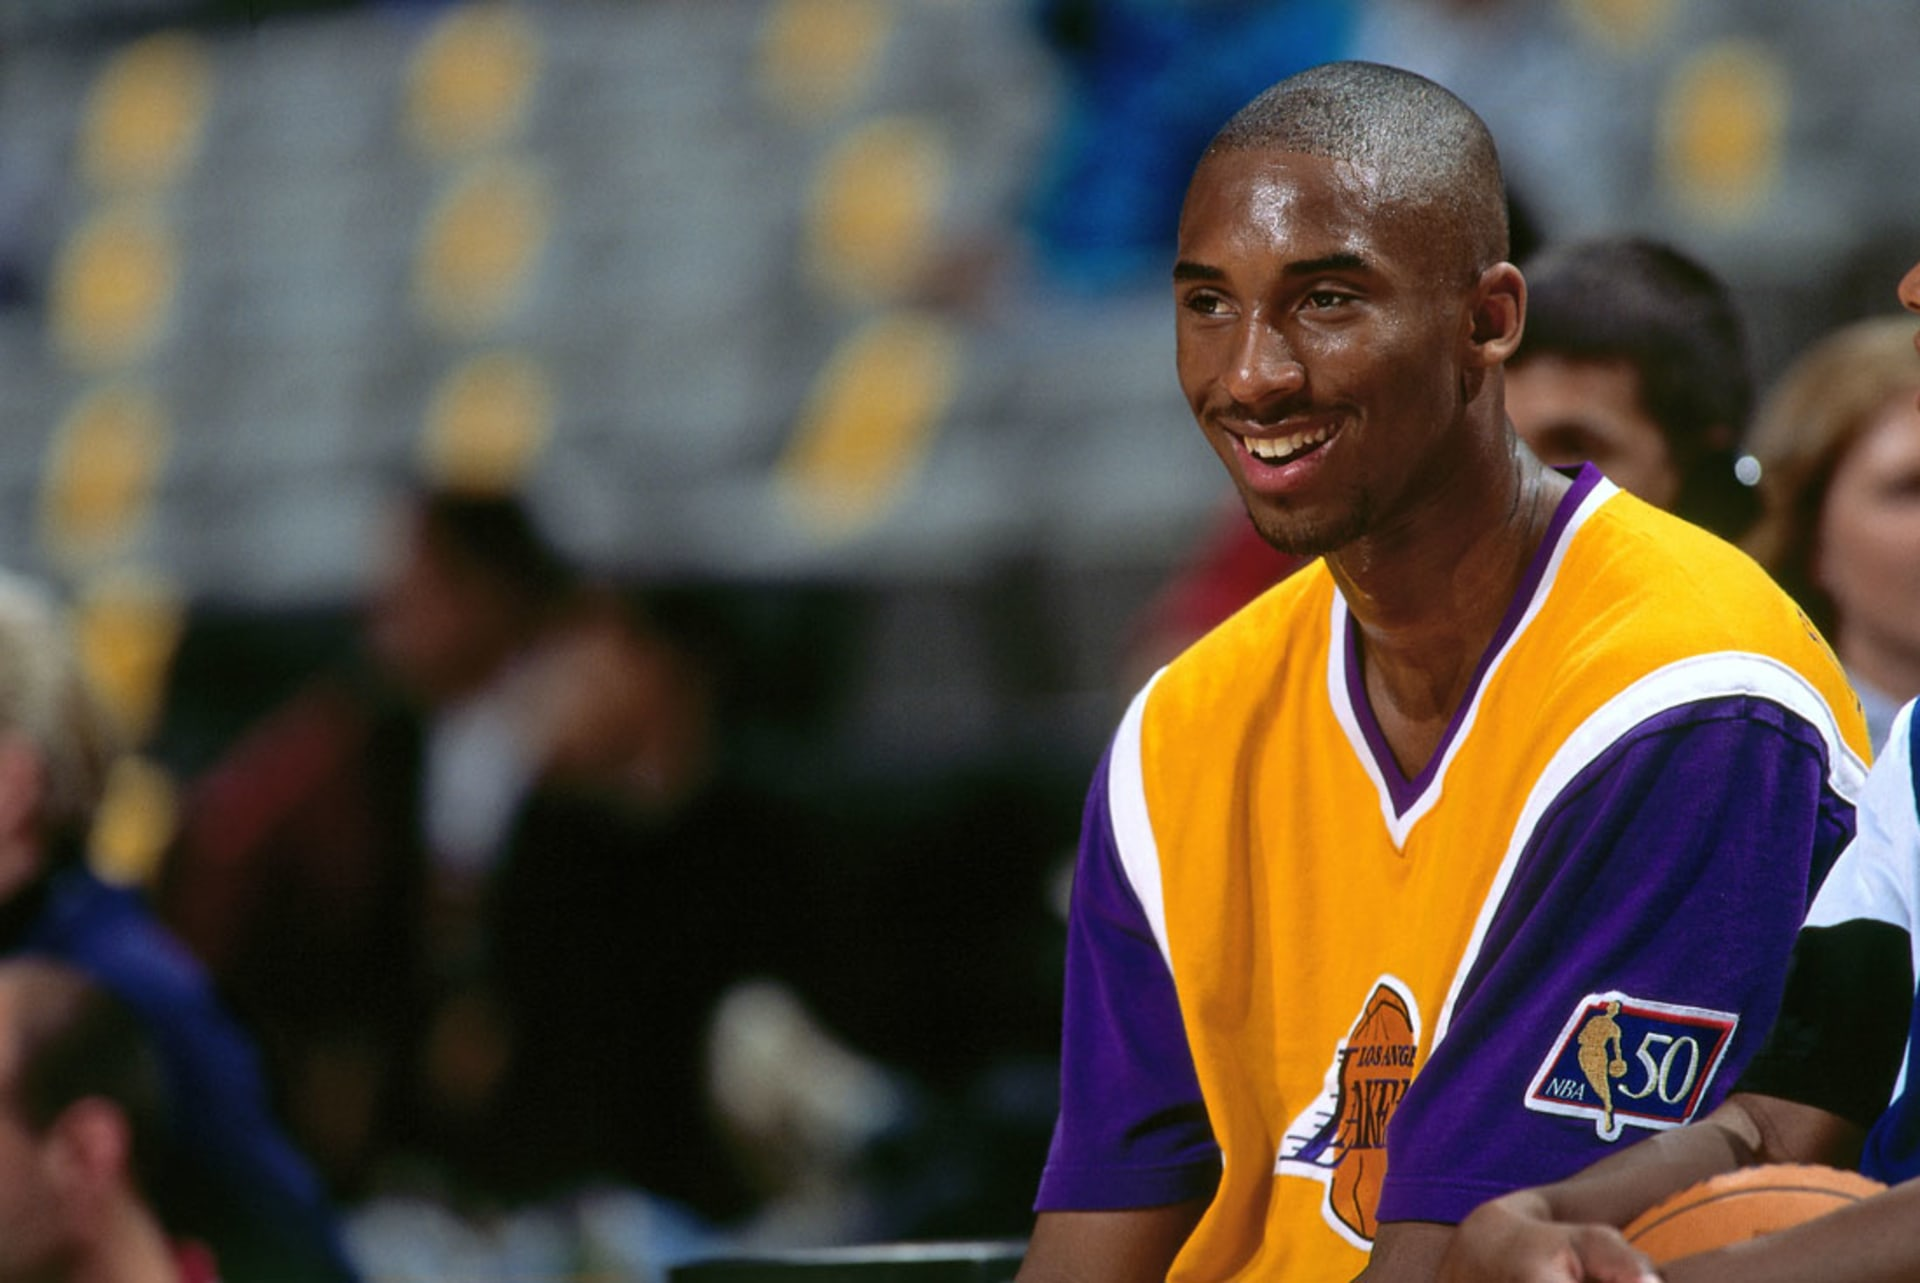 429ab7efe65 Kobe smiling circa 1997 at the Oakland Coliseum. Image via Rocky  Widner NBAE Getty Images.